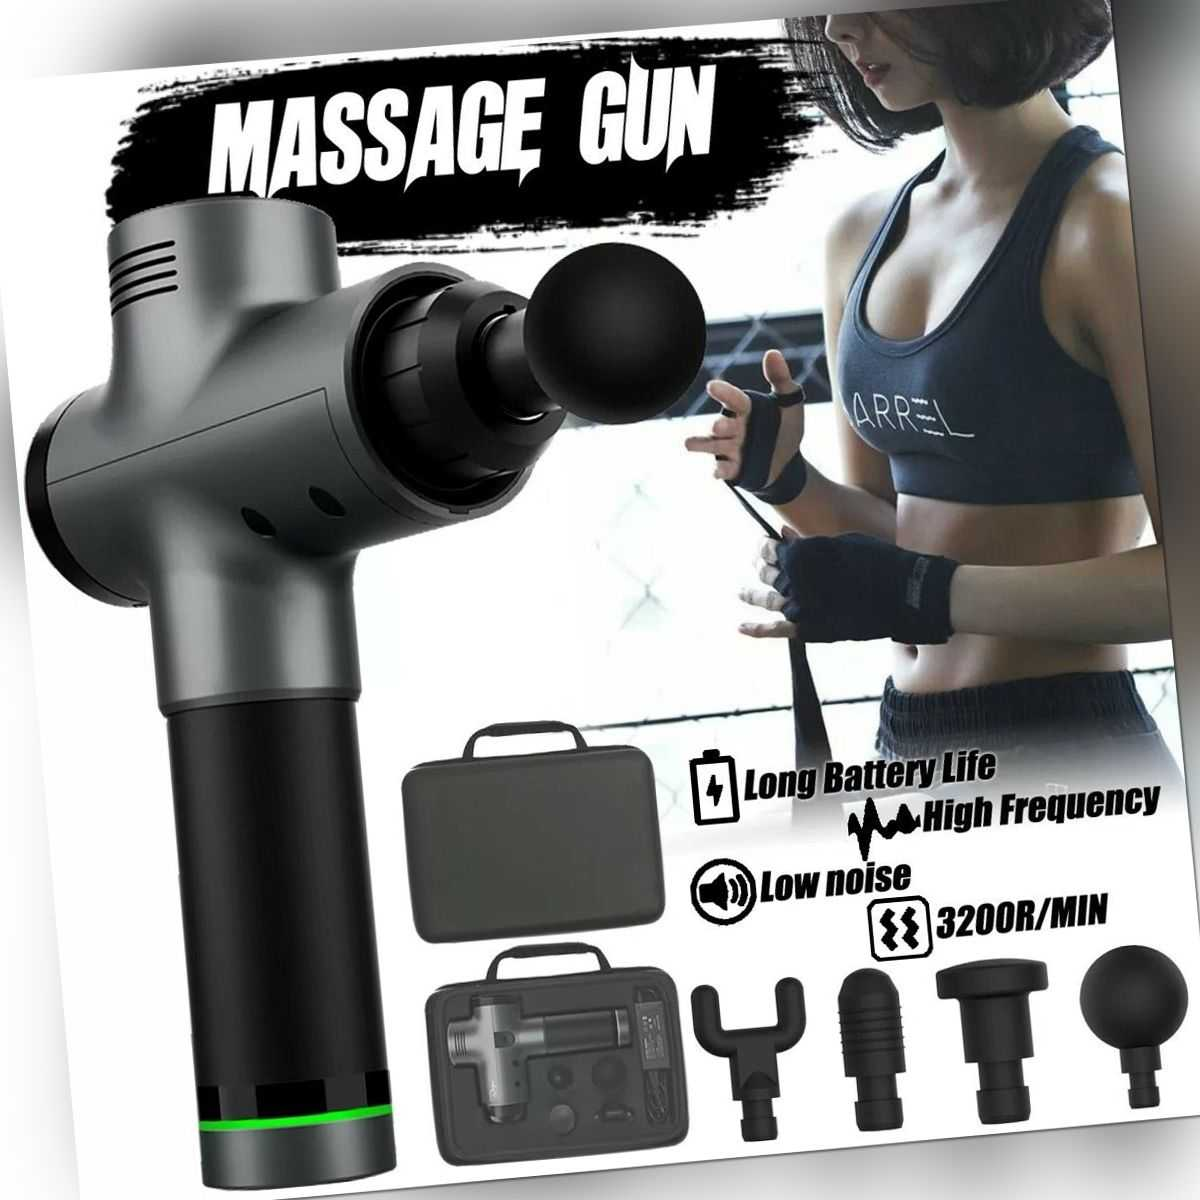 Profi Muskel Massager Gun Massagegerät LCD Elektrisches Massagepistole